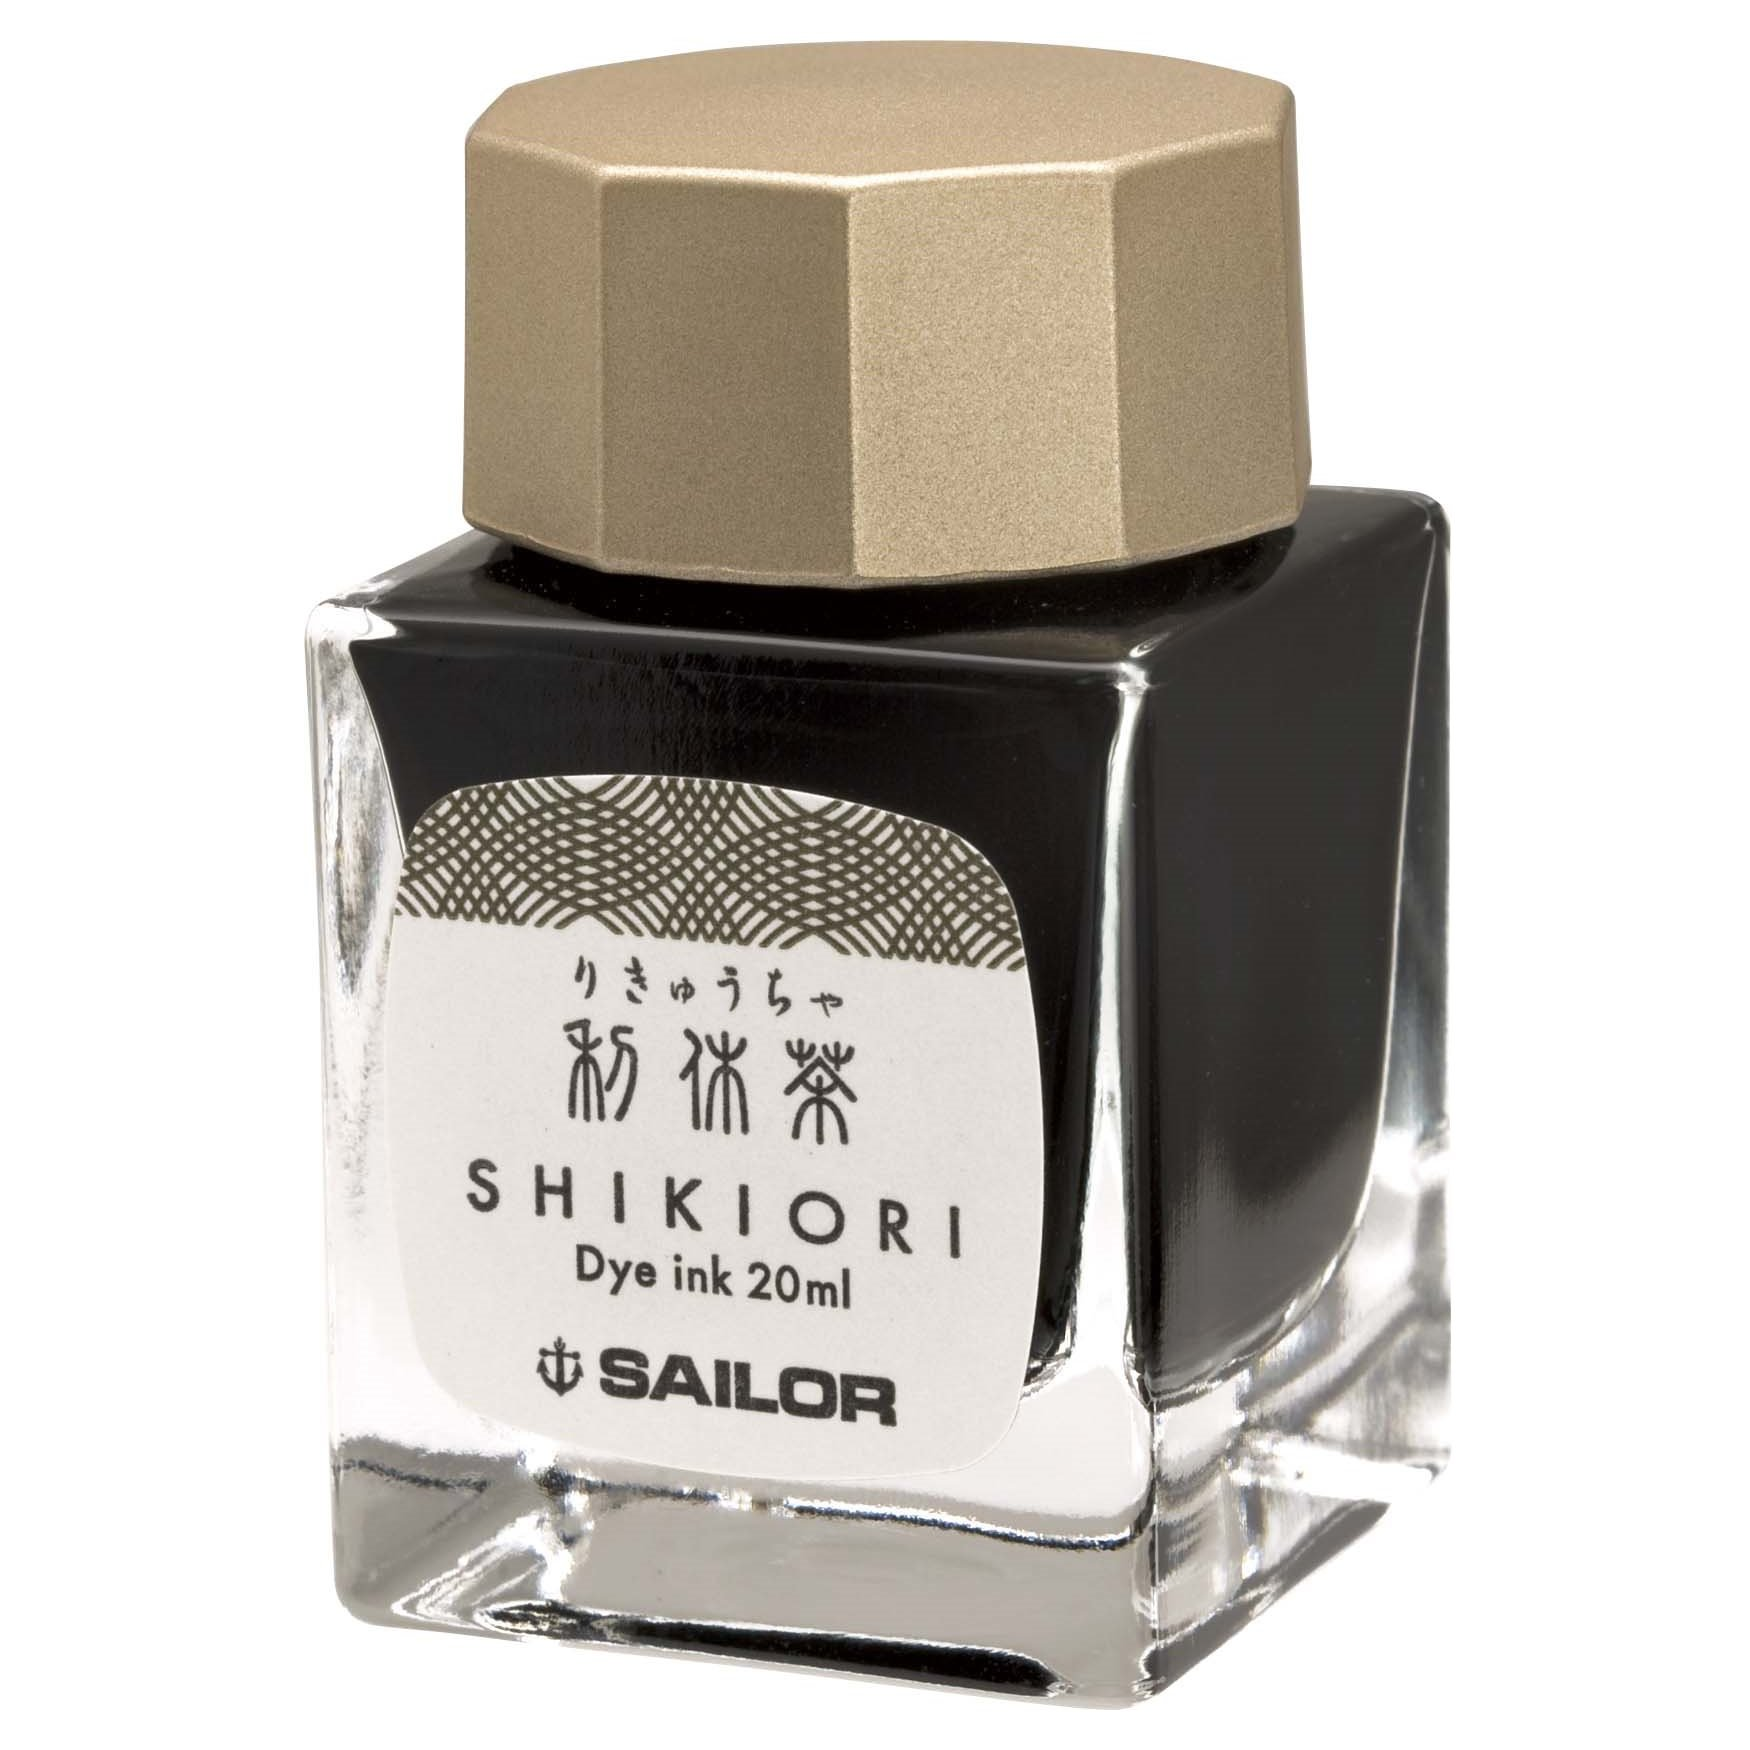 Sailor Shikiori Four Seasons Bottled Ink 20ml - Rikyu-Cha (Tea Green Brown)